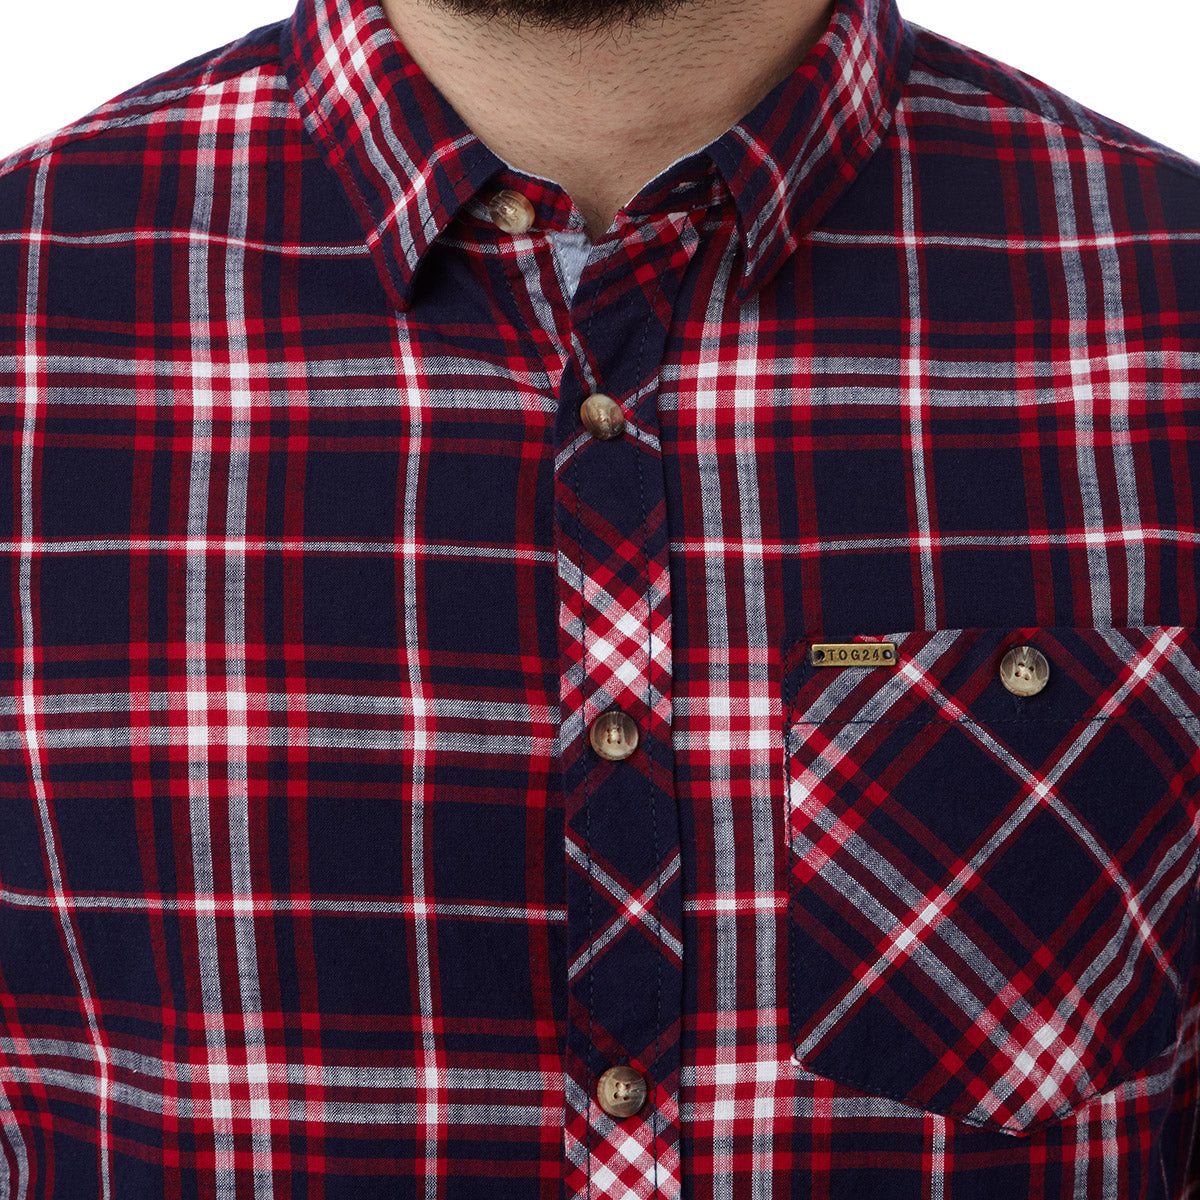 Neville Mens Long Sleeve Shirt - Navy Check image 4